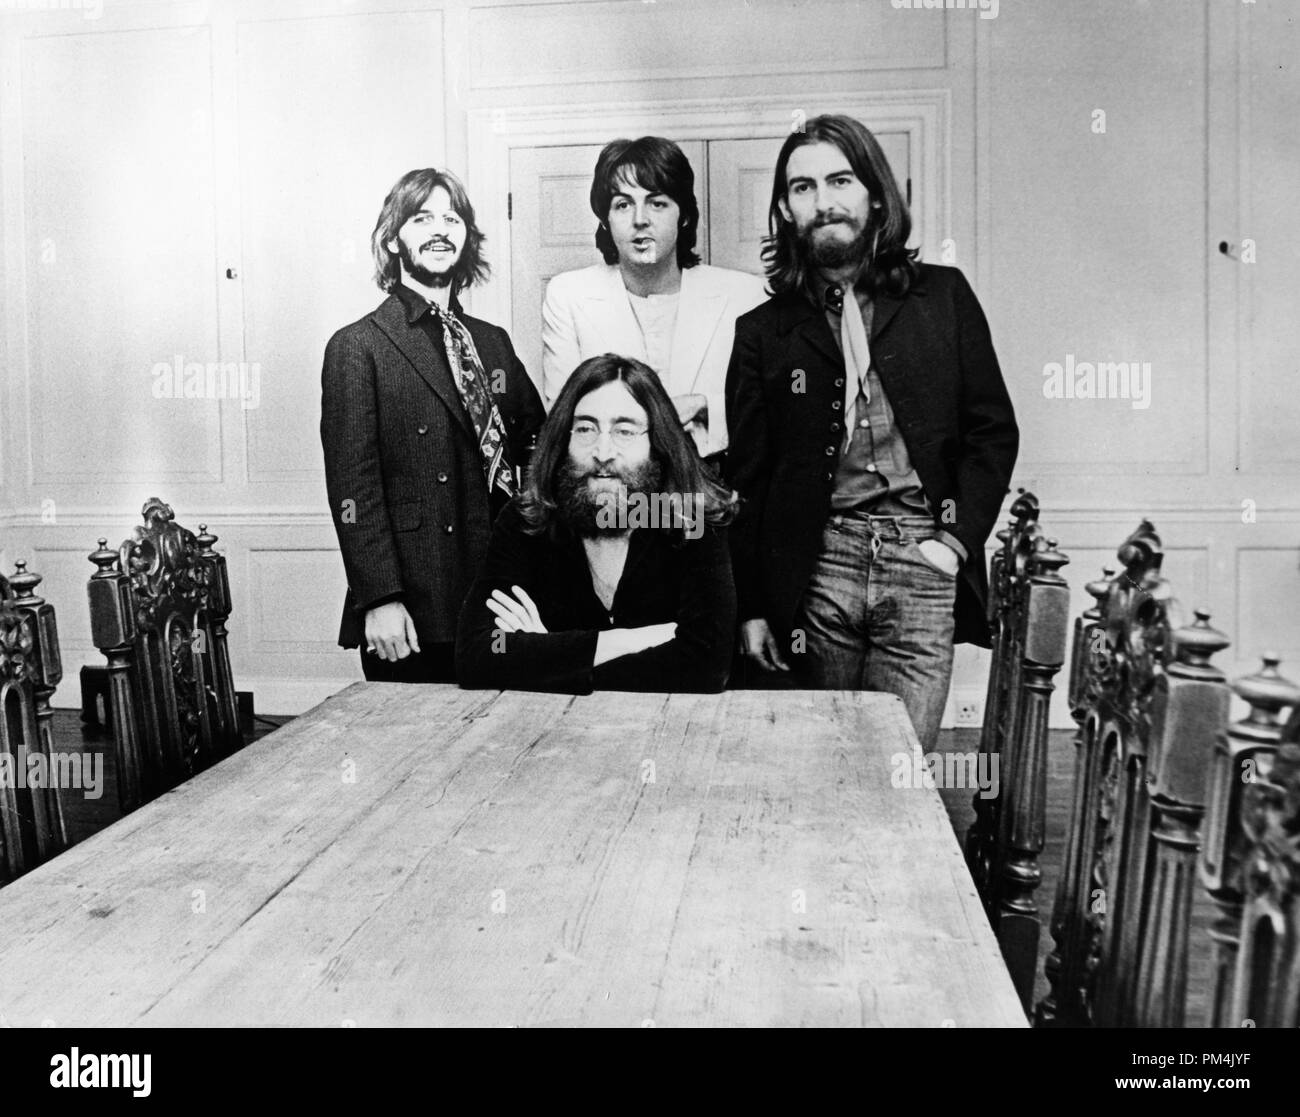 Beatles Ringo Starr, Paul McCartney, George Harrison and John Lennon, circa 1969. File Reference #1013_103 THA © JRC /The Hollywood Archive - All Rights Reserved. - Stock Image